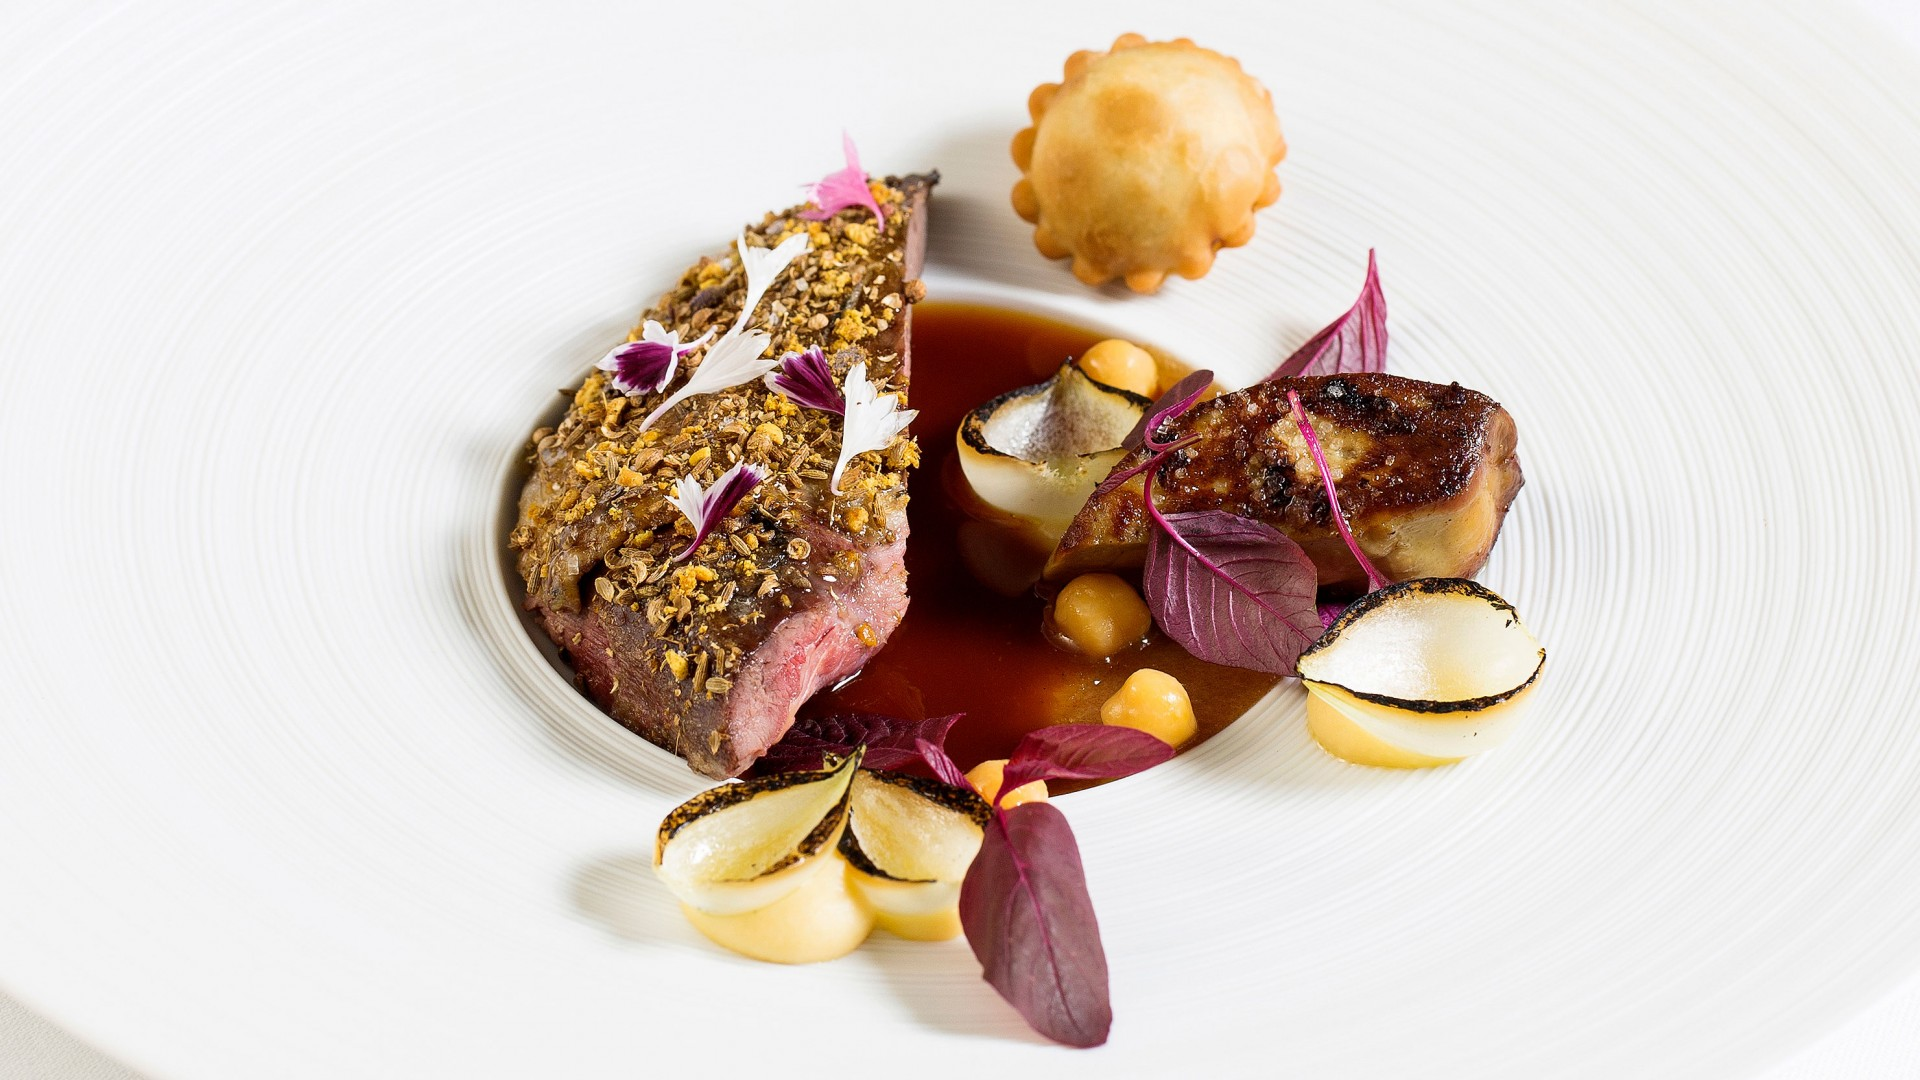 Grouse Burnside Farm, ras el hanout, foie gras, chickpea, dates